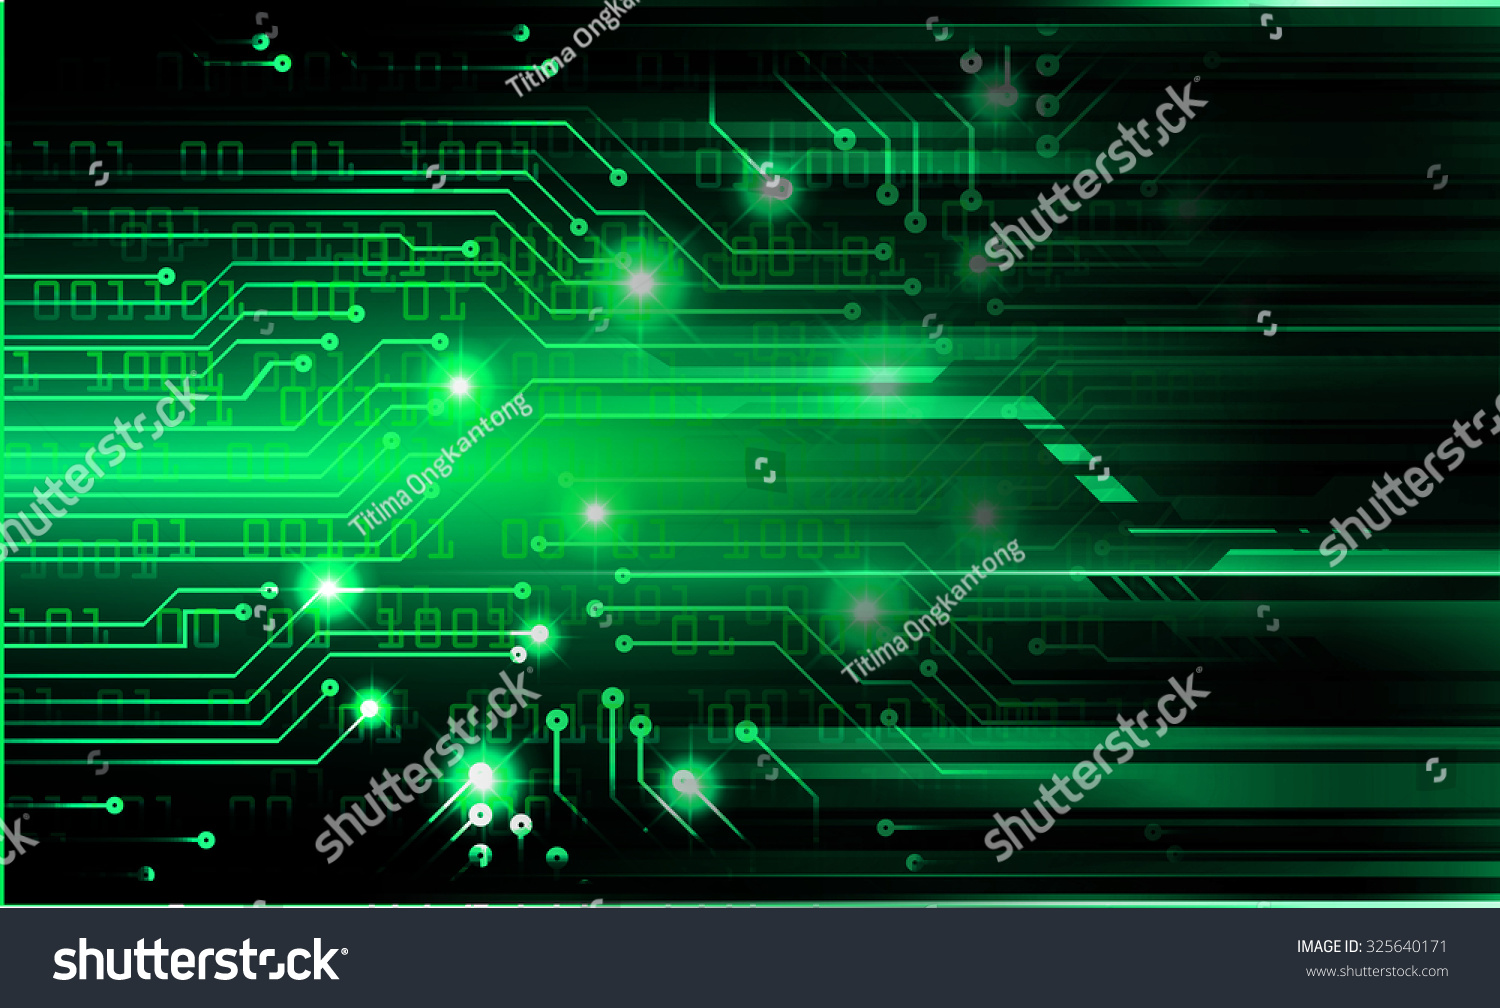 website colors neon : Dark Green Color Light Abstract Technology Background For Computer Graphic Website Internet And Business Circuit